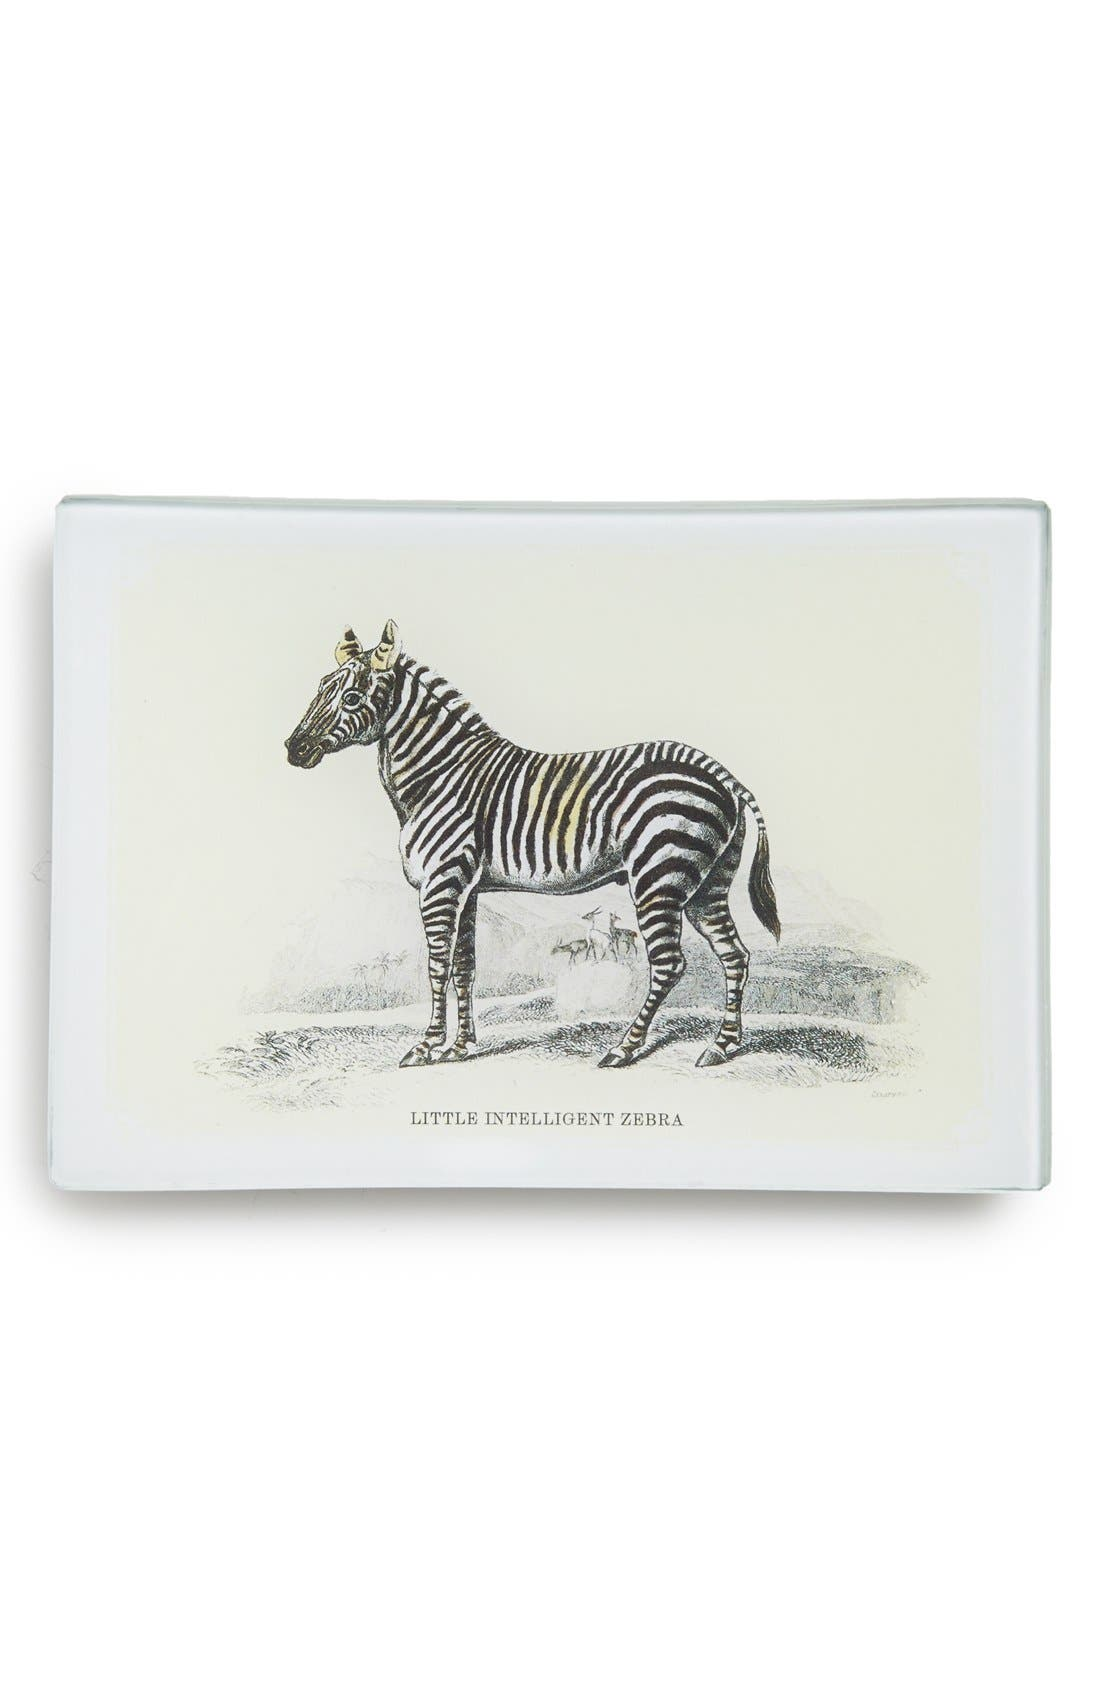 Alternate Image 1 Selected - Ben's Garden 'Little Intelligent Zebra' Decorative Glass Tray